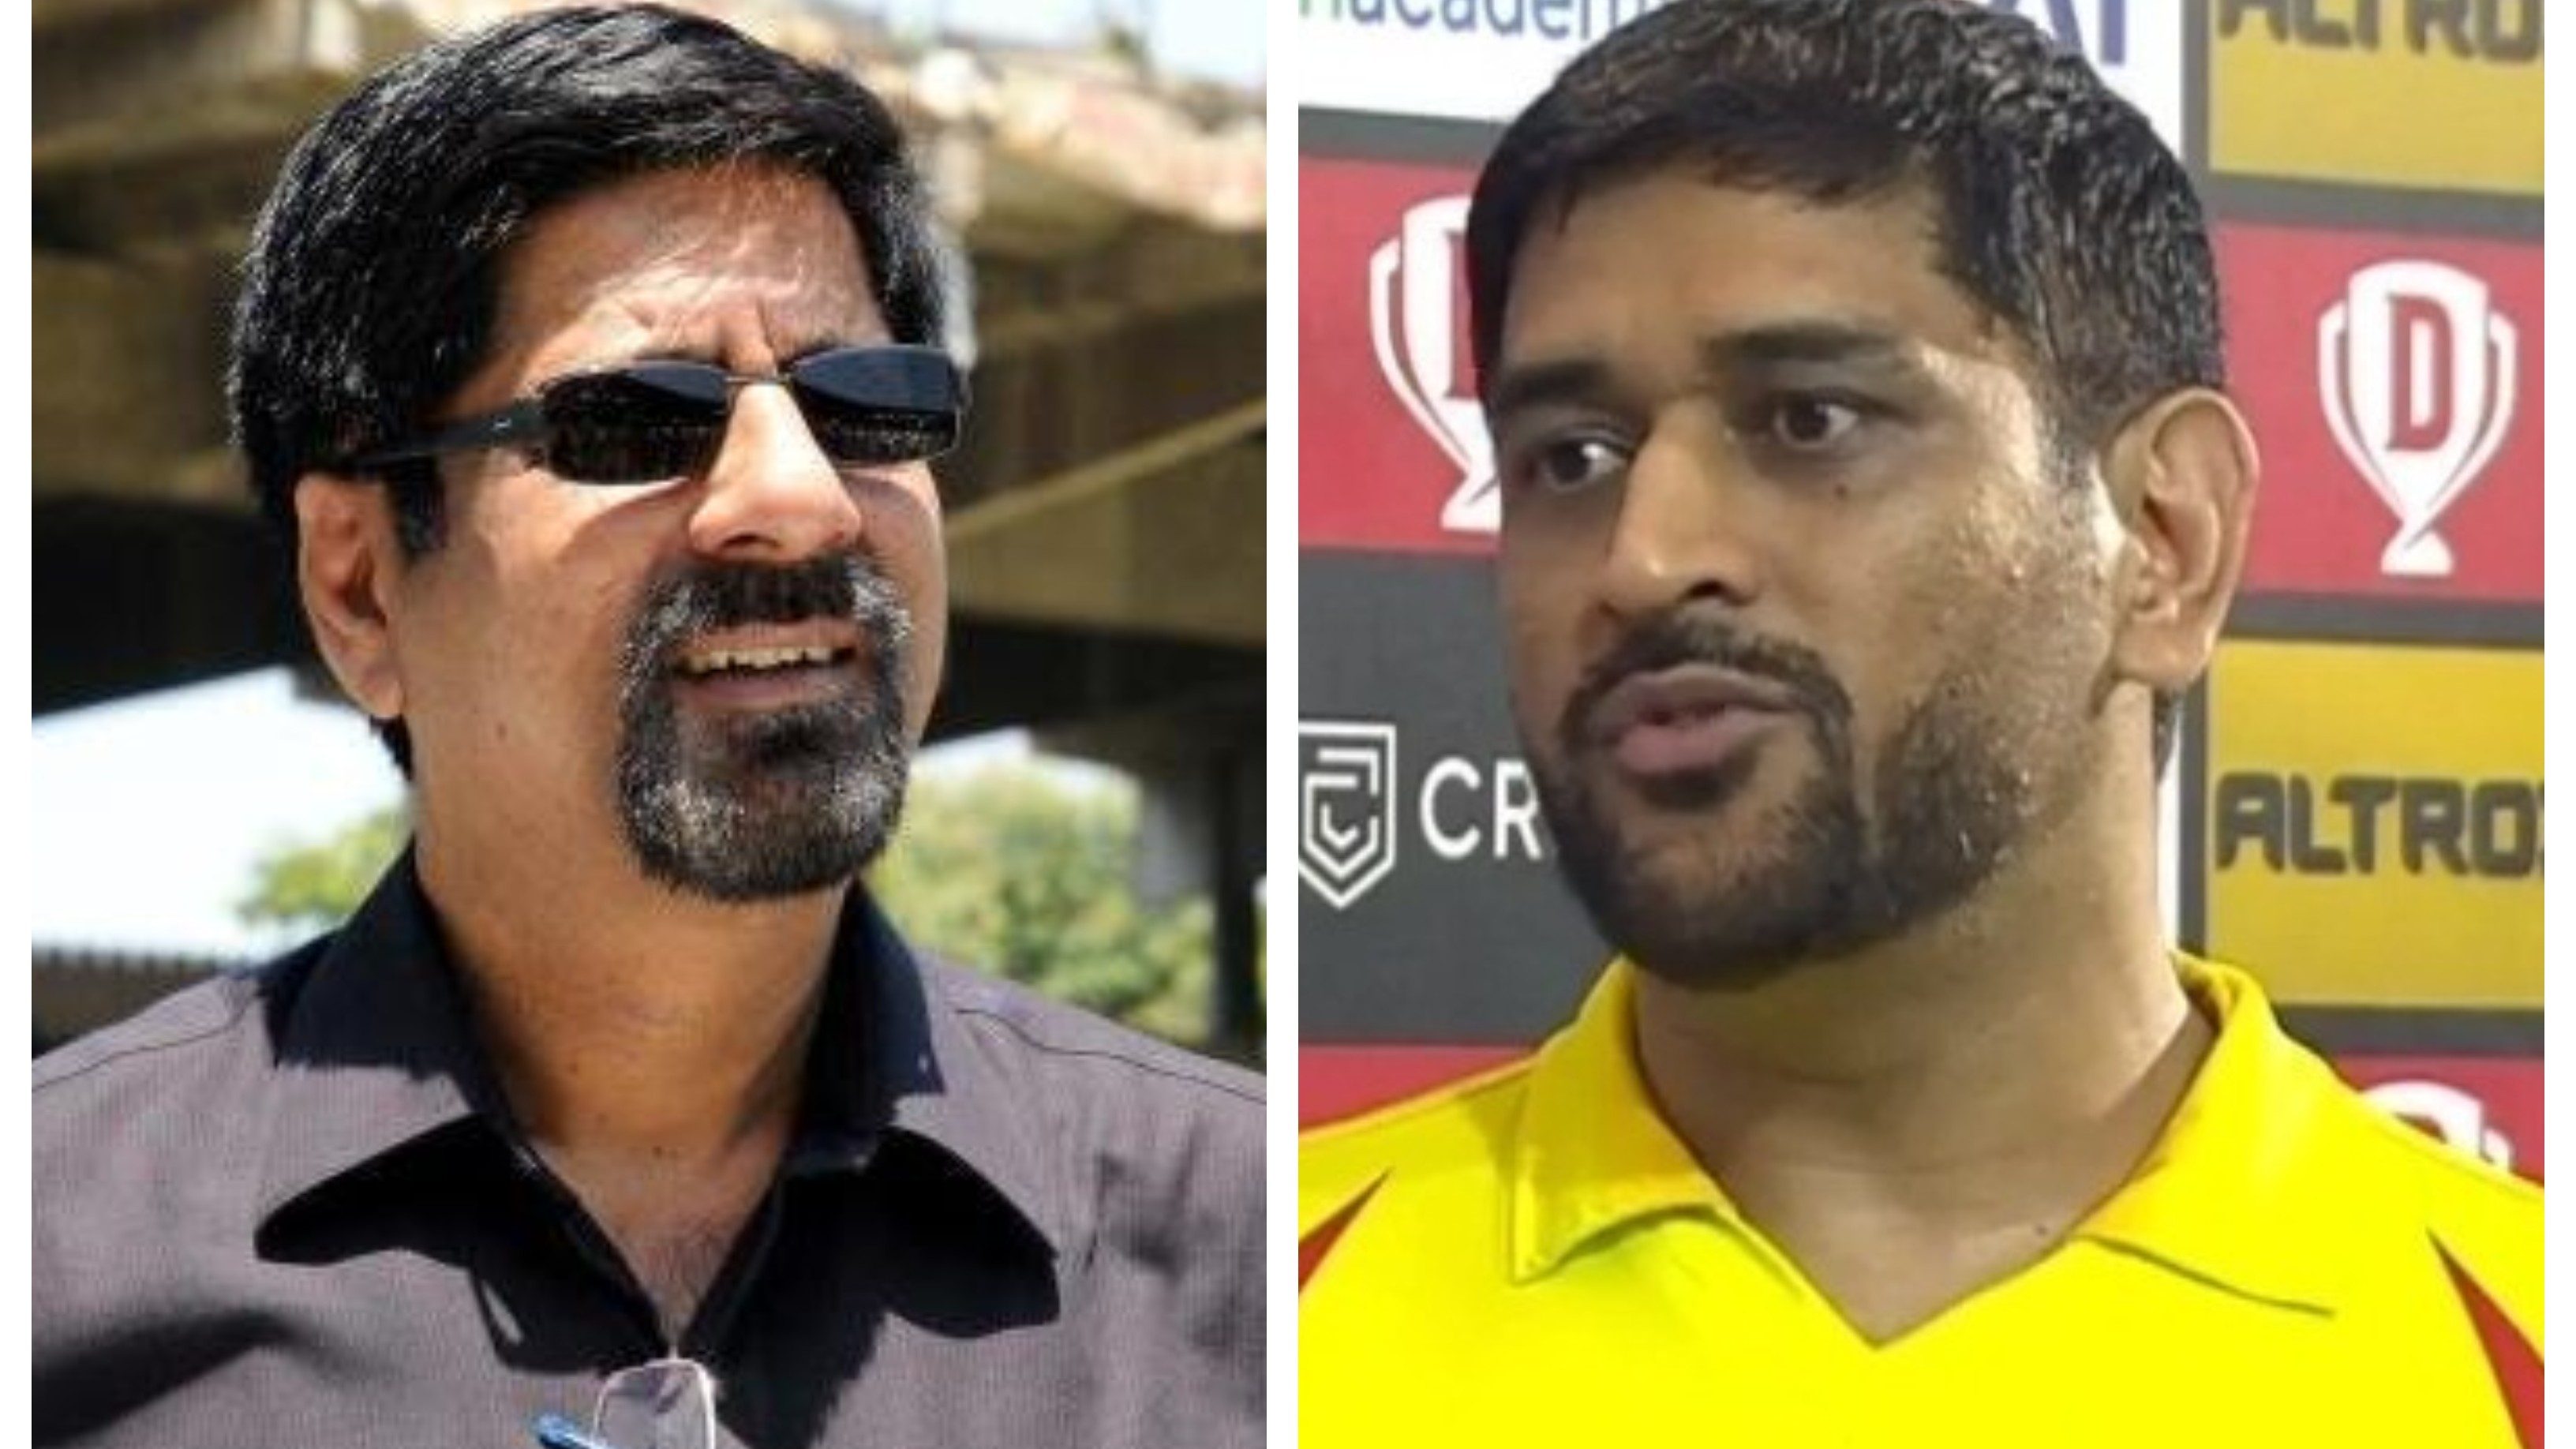 IPL 2020: WATCH – Kris Srikkanth slams MS Dhoni for 'CSK youngsters lack spark' comment